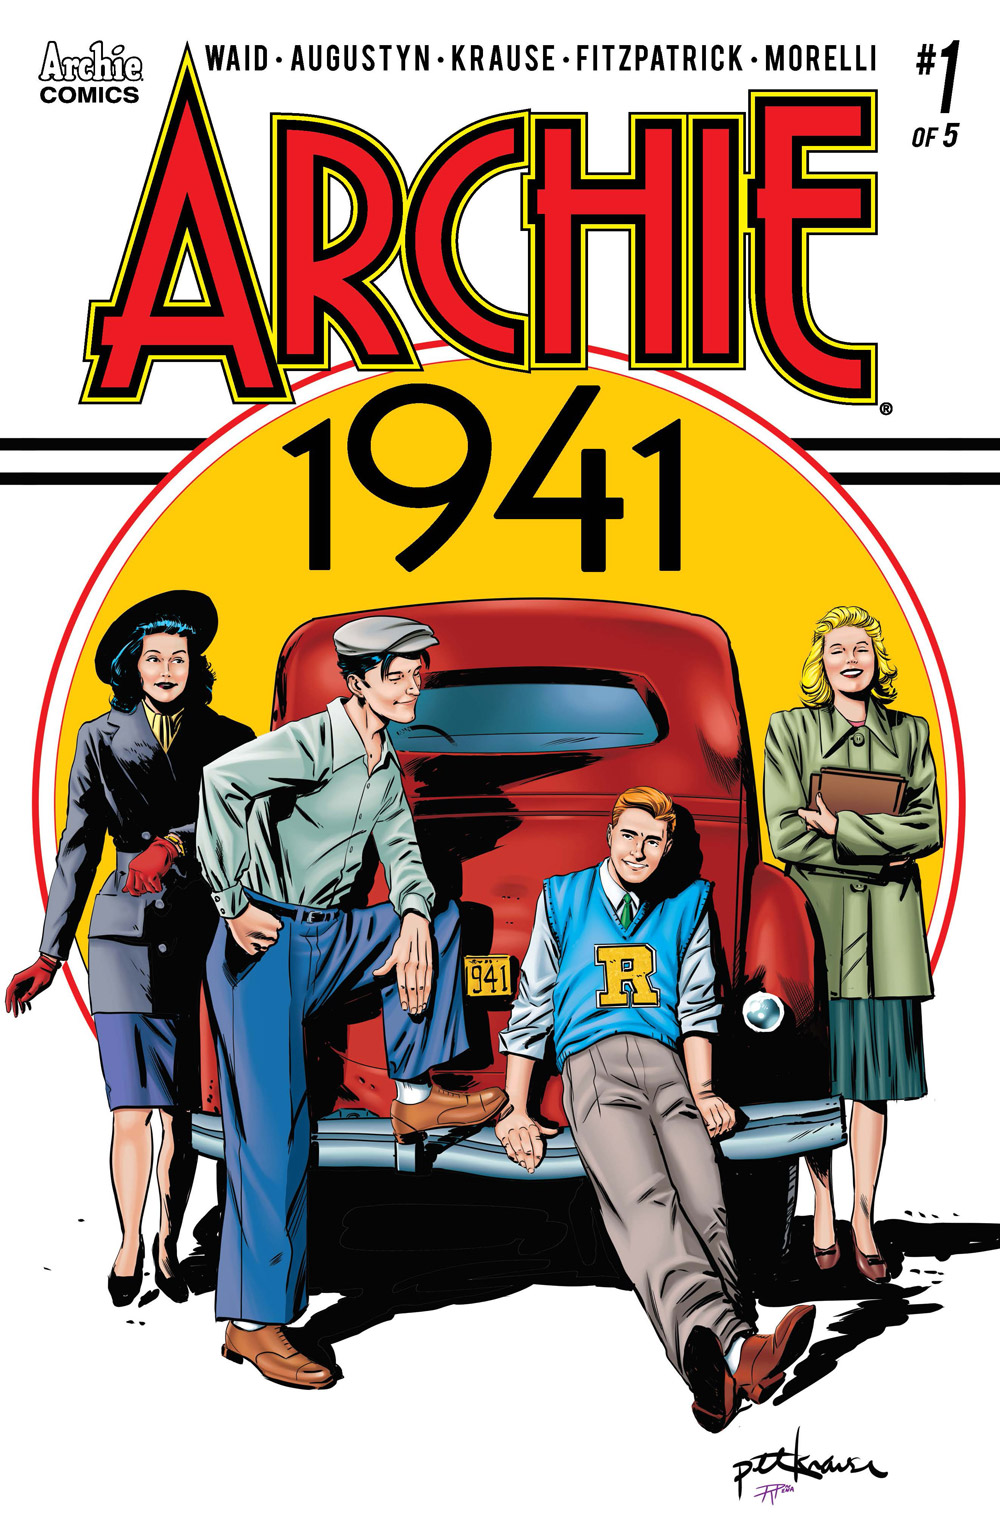 ARCHIE 1941 #1 (of 5)